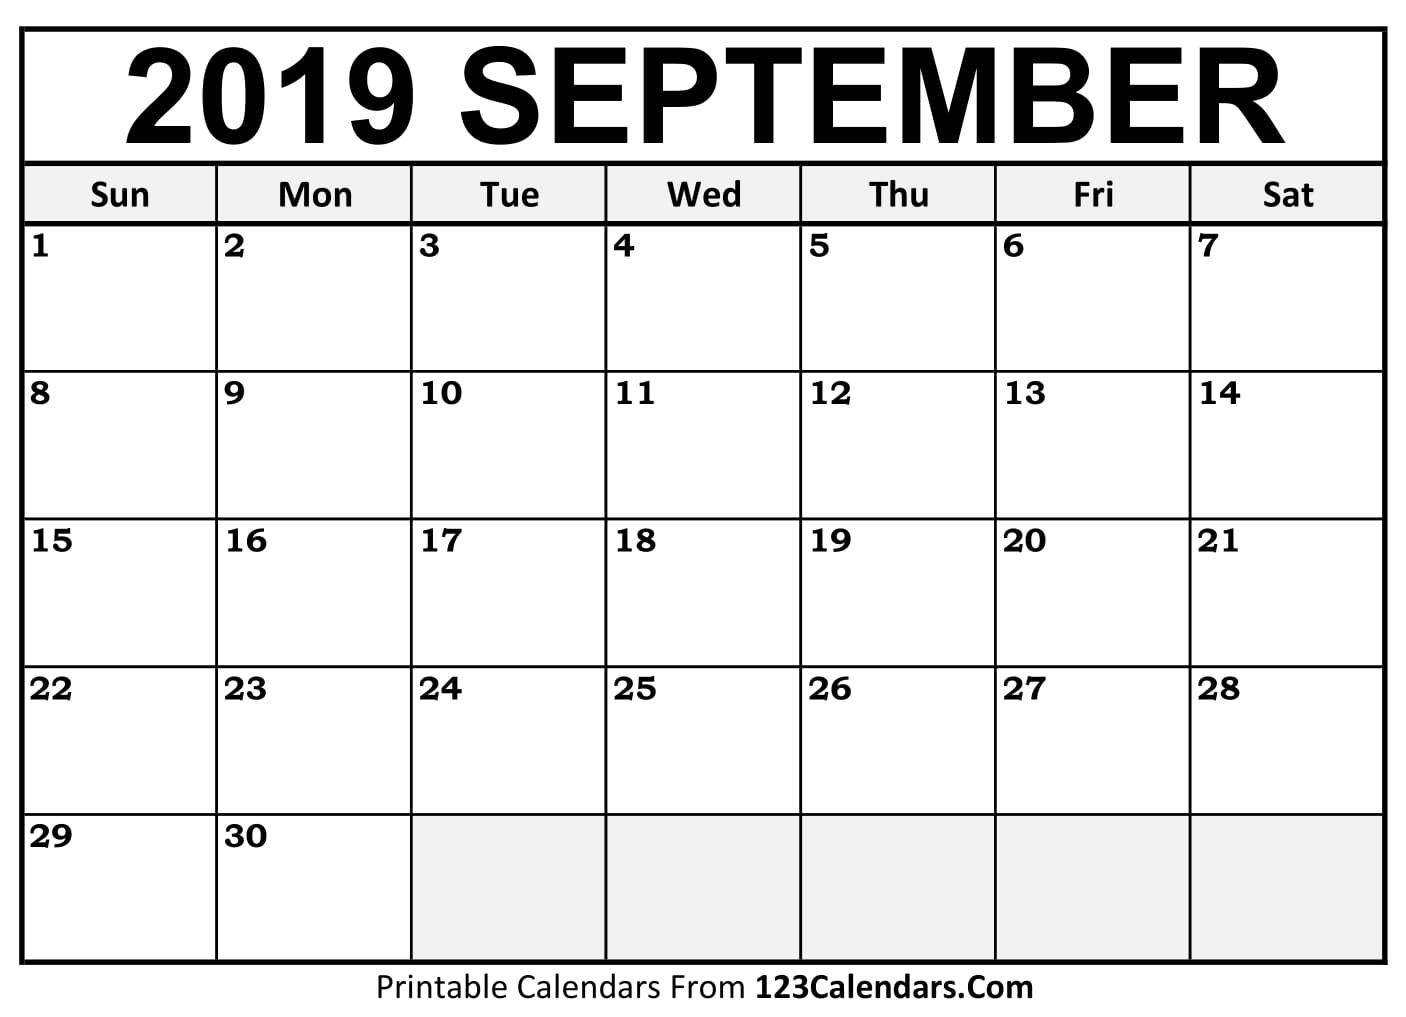 image regarding Free Printable Oct Calendar titled September 2019 Printable Calendar